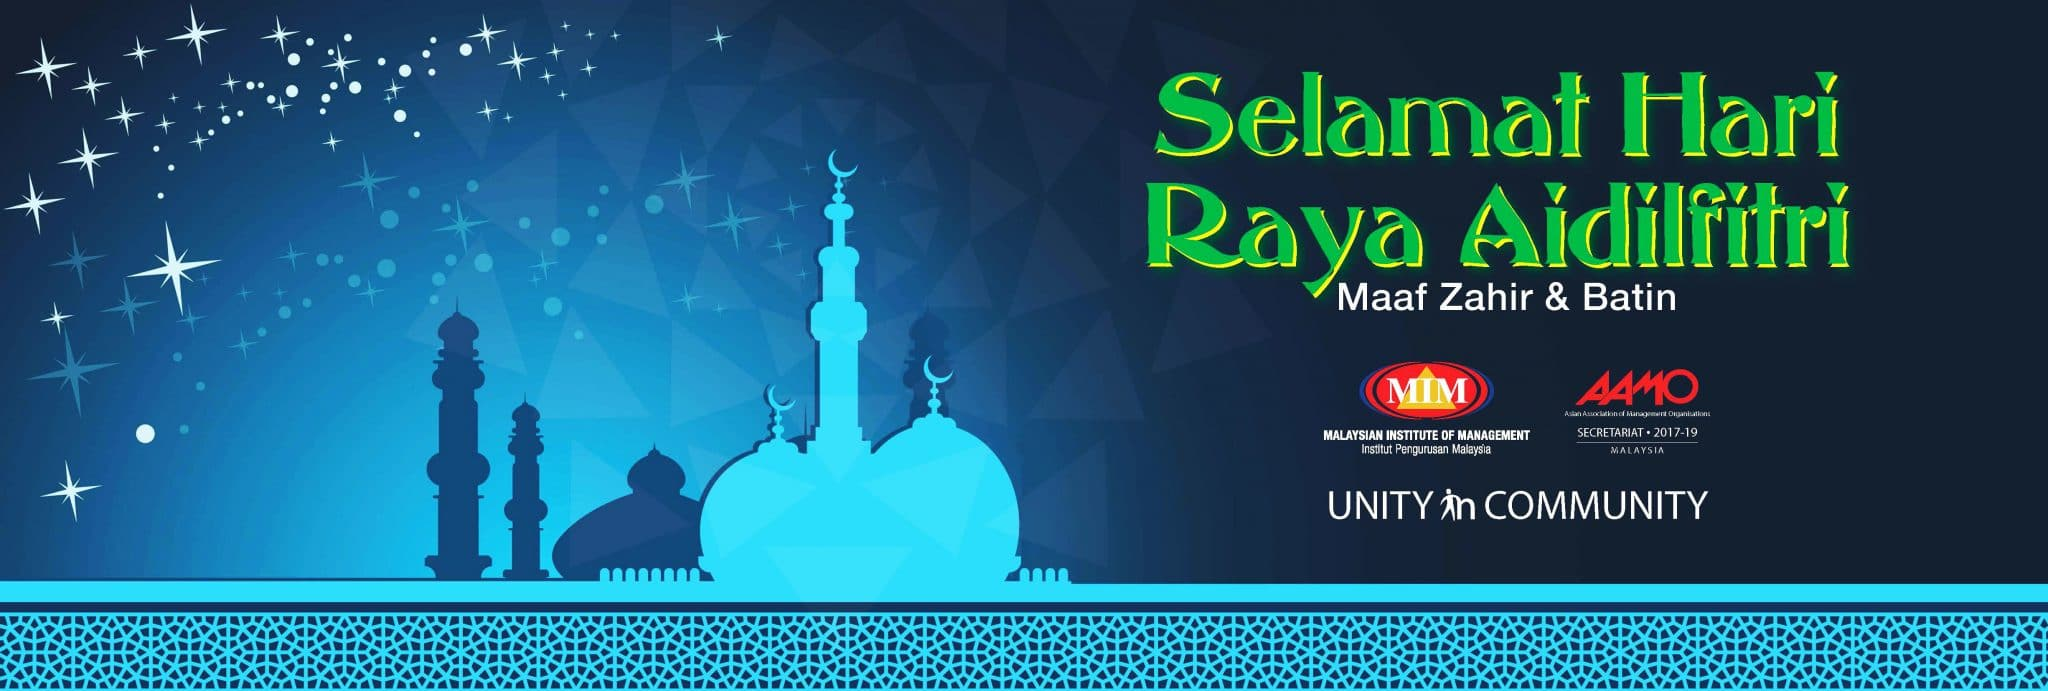 MIM-2017-Raya-New-Year-eCard-10.1.2017-B2-w-CSR-message-Website